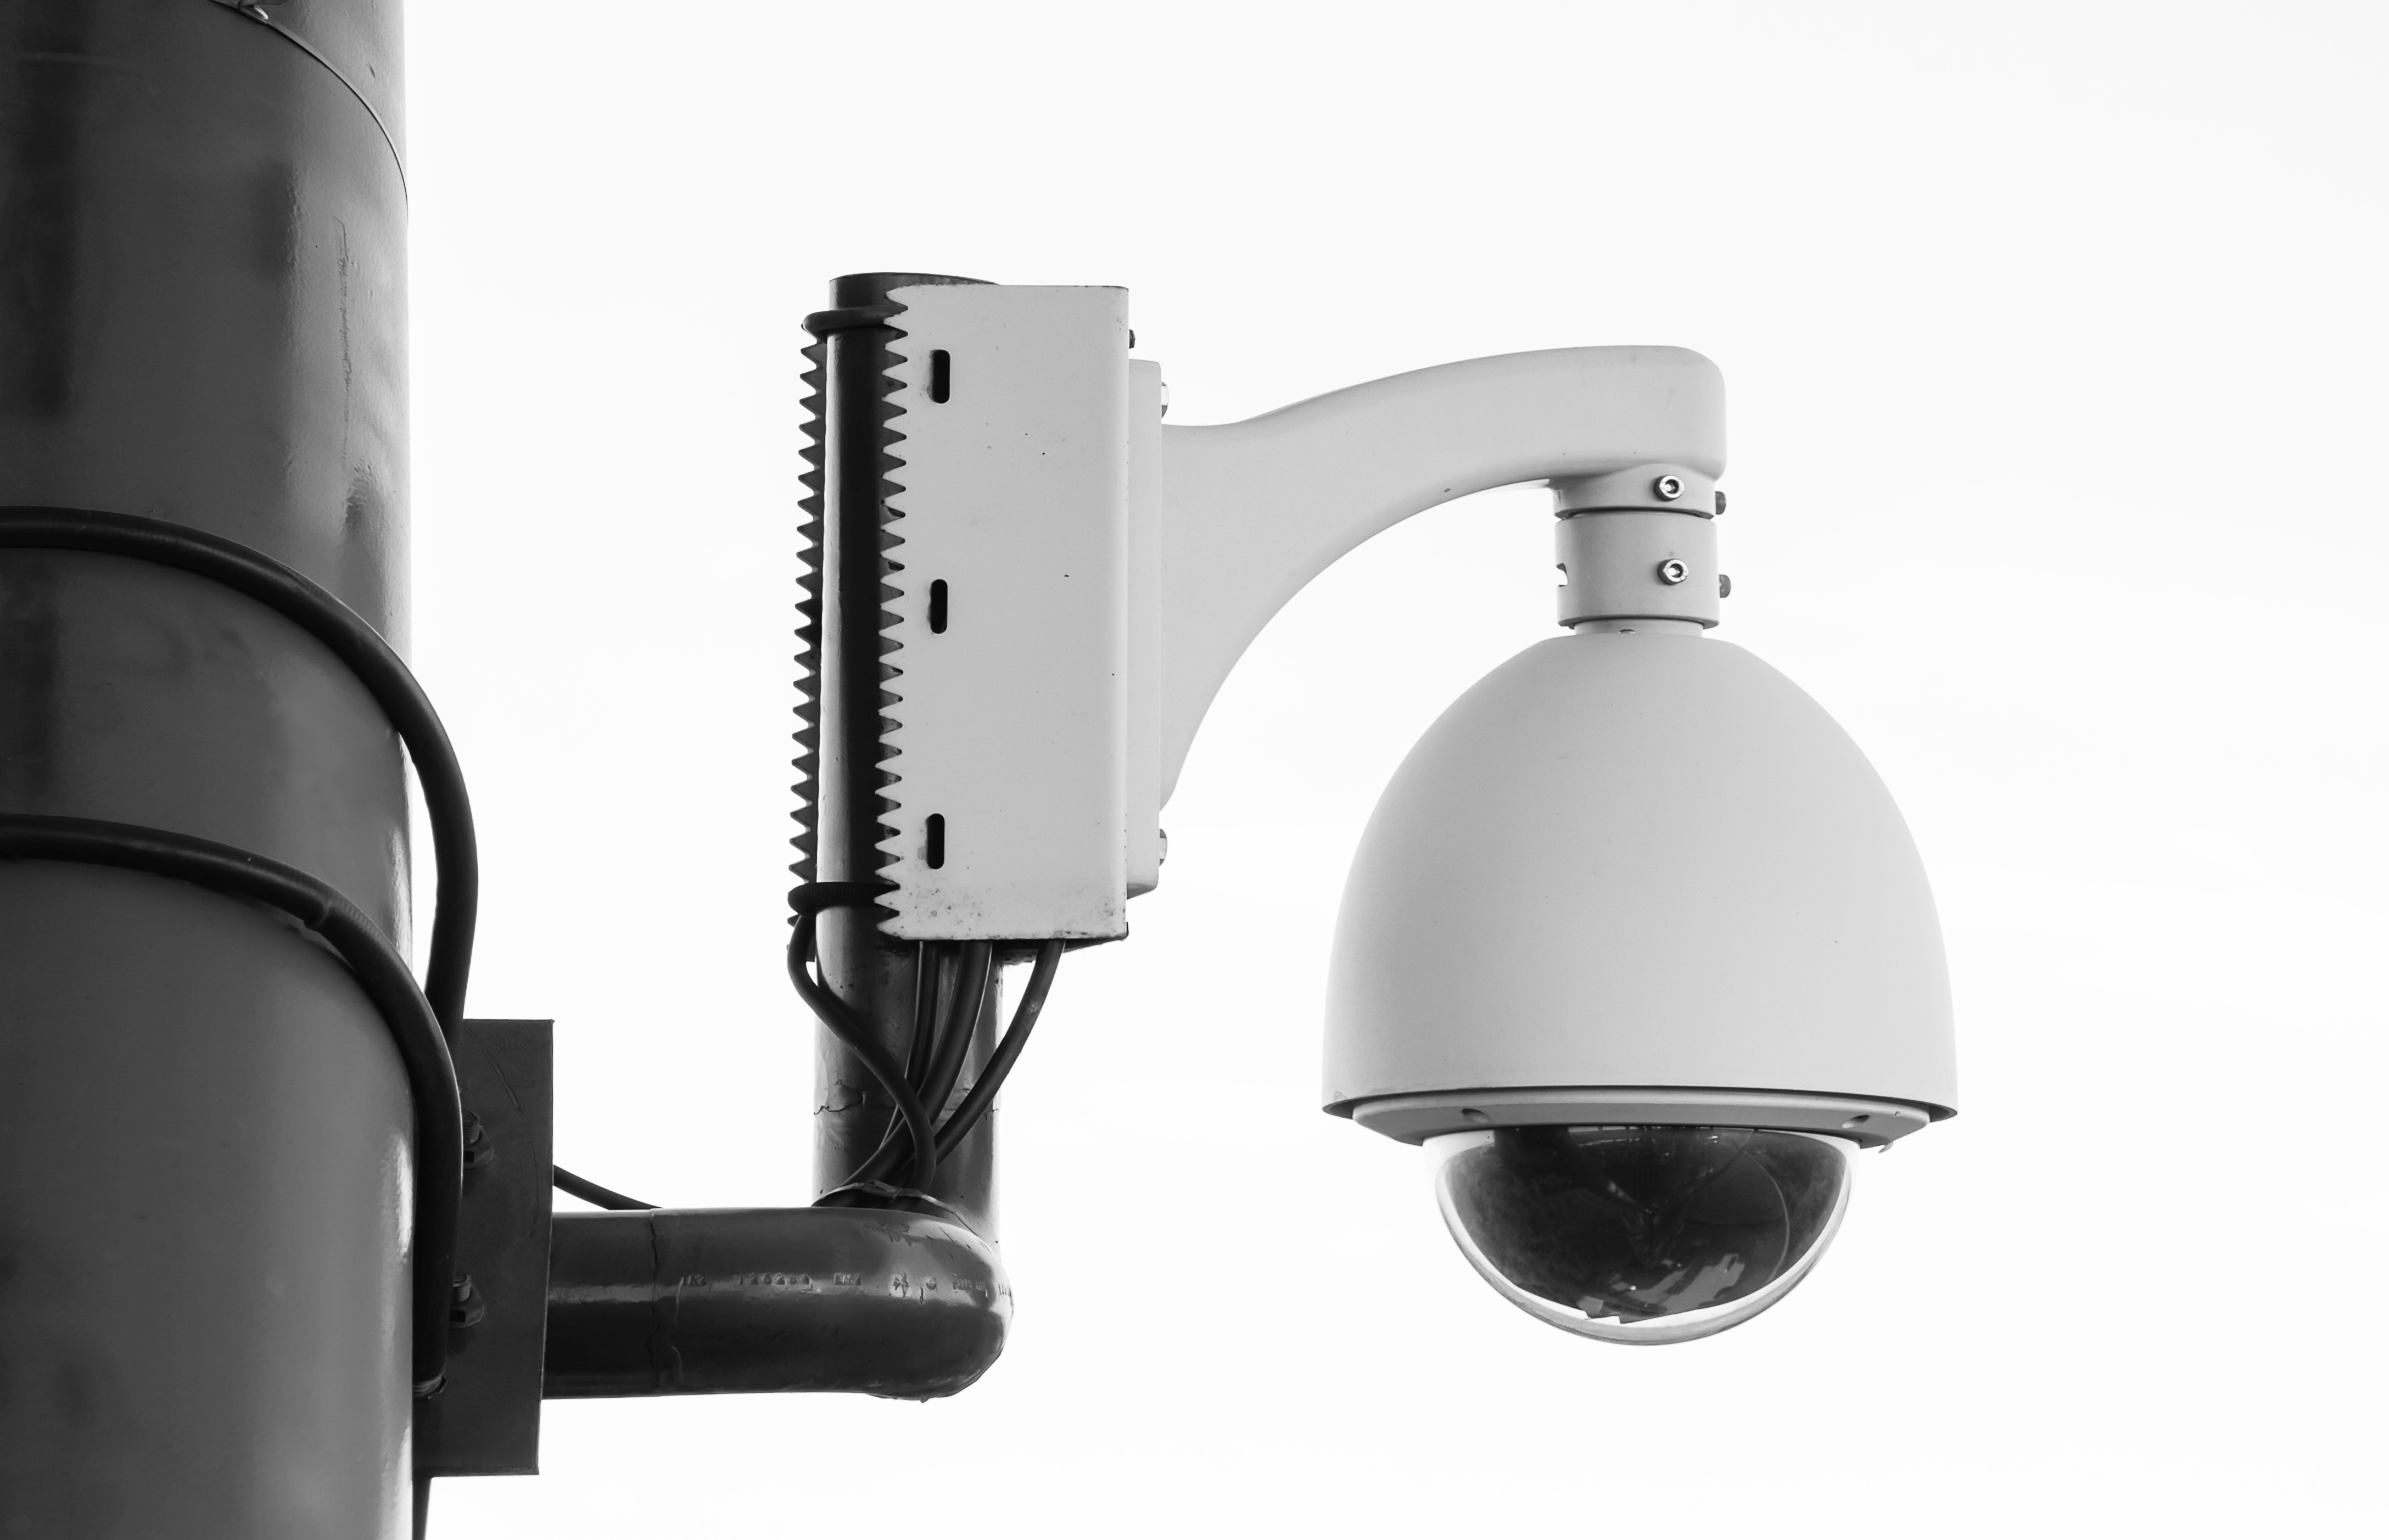 Things to Know Before Buying a Commercial Security System